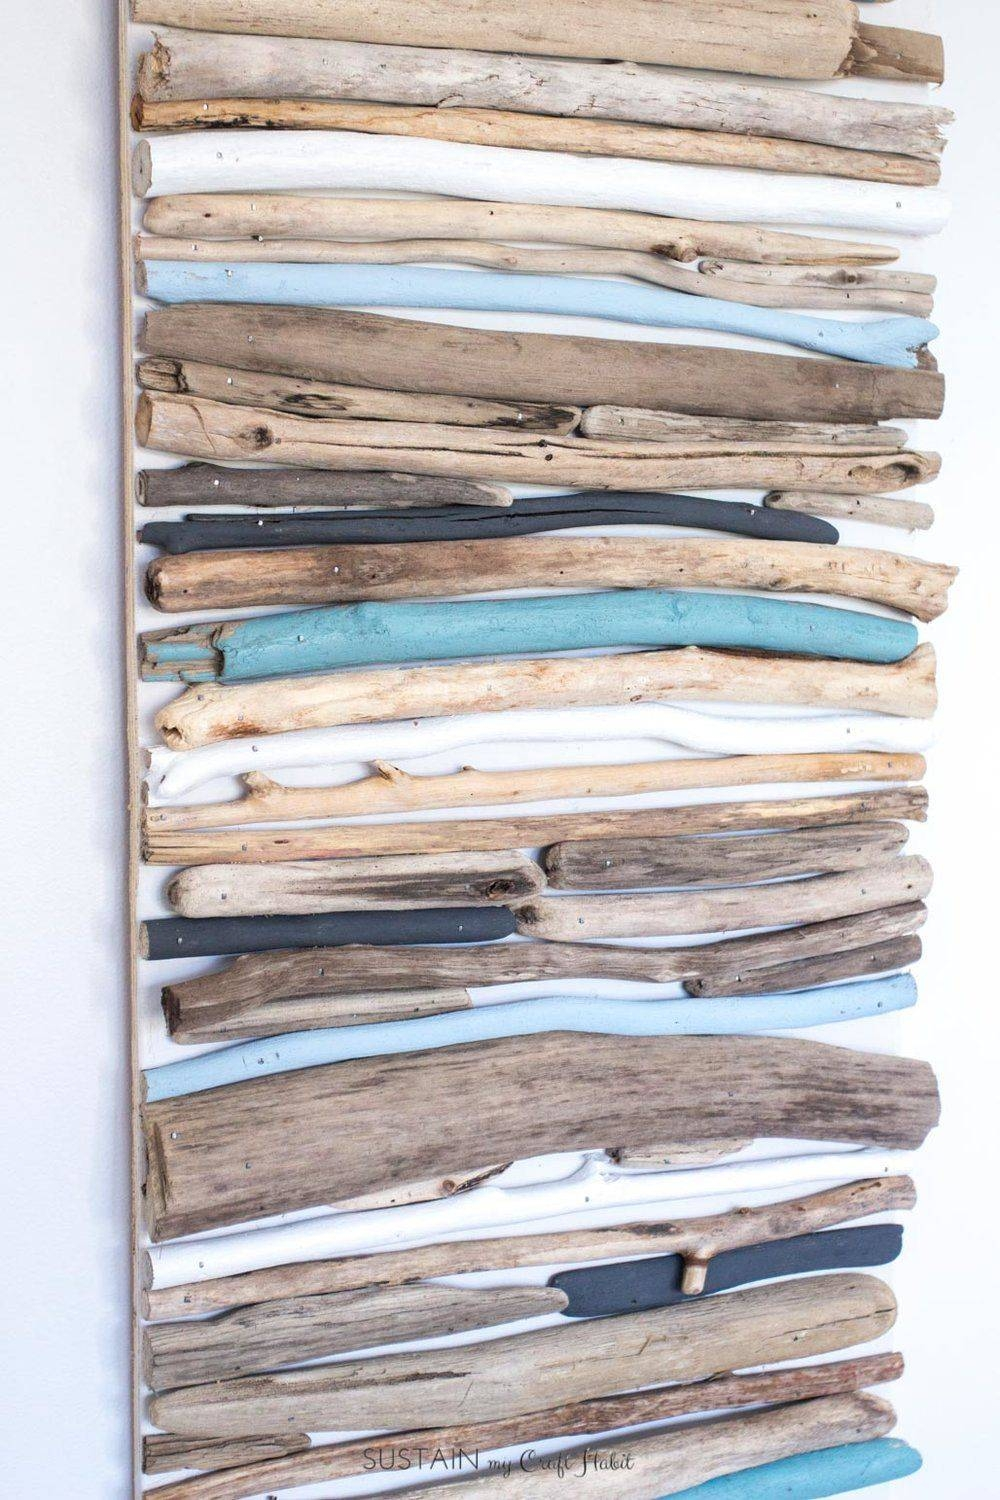 Diy Coastal Decor – Painted Driftwood Wall Art | Driftwood Wall In Current Coastal Wall Art Decor (View 14 of 20)